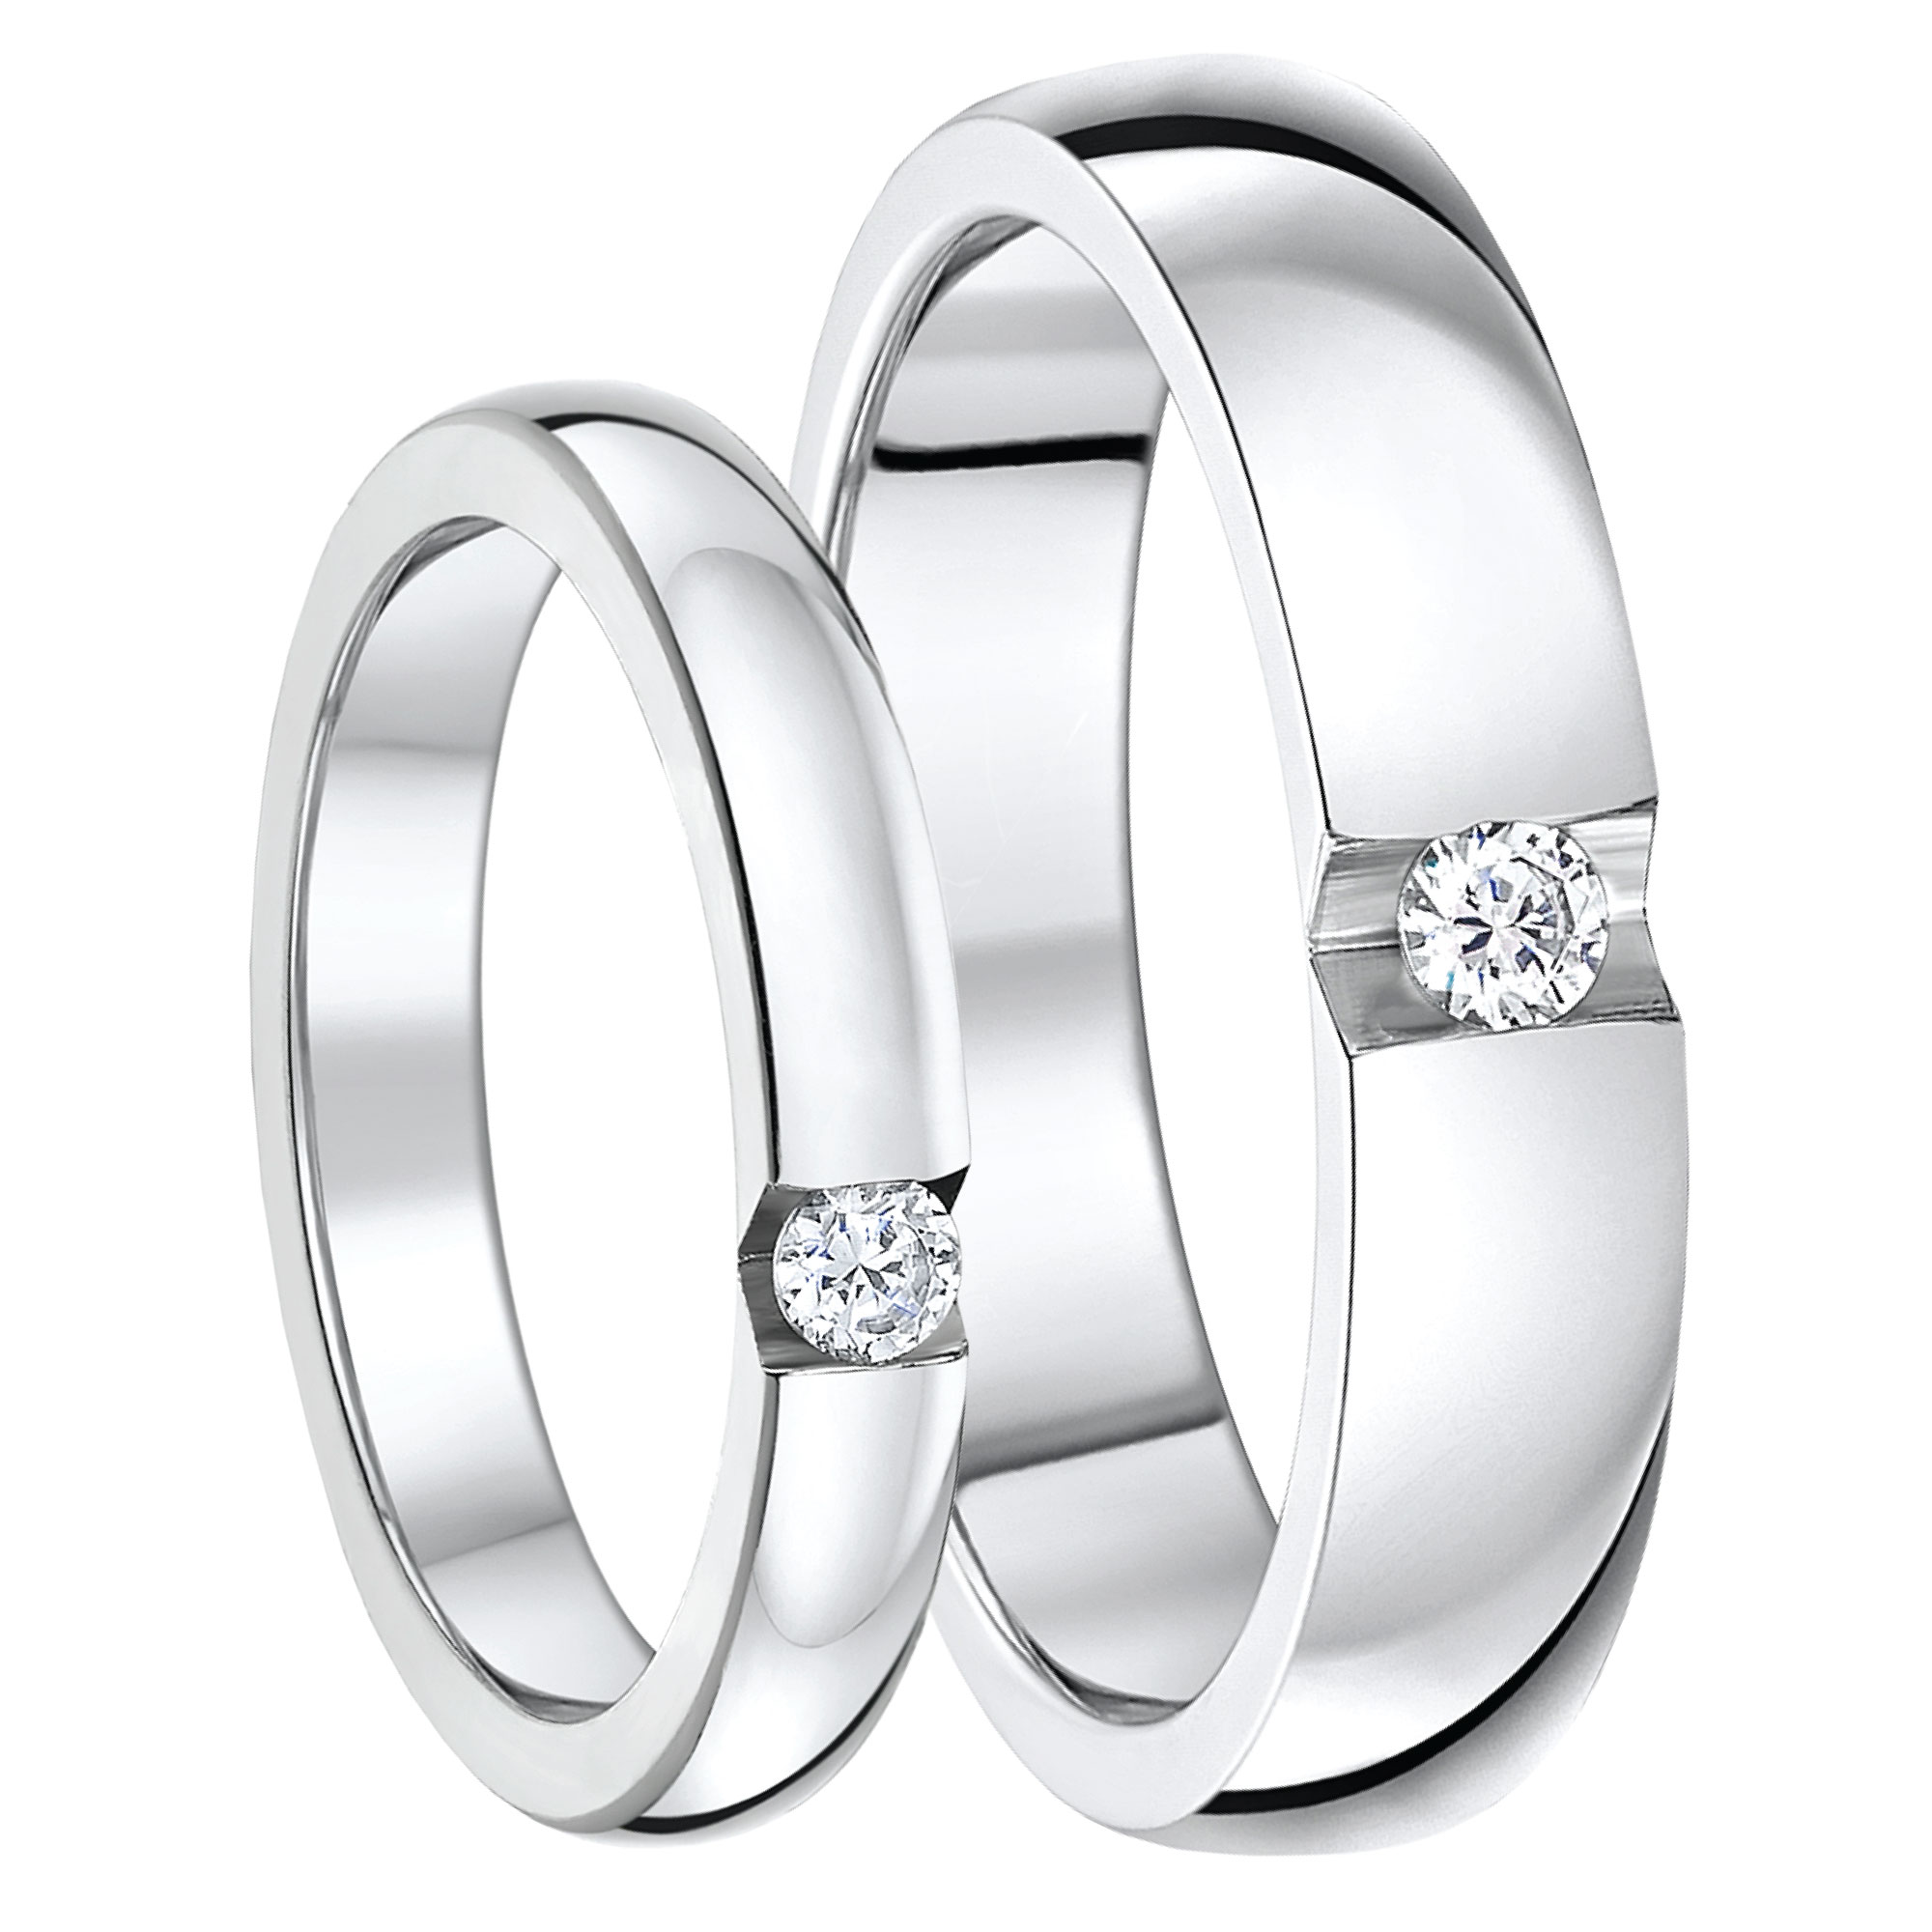 engagement band platinum bands mccaul wedding and for women jewellery goldsmiths diamond showcase balance fitted rings